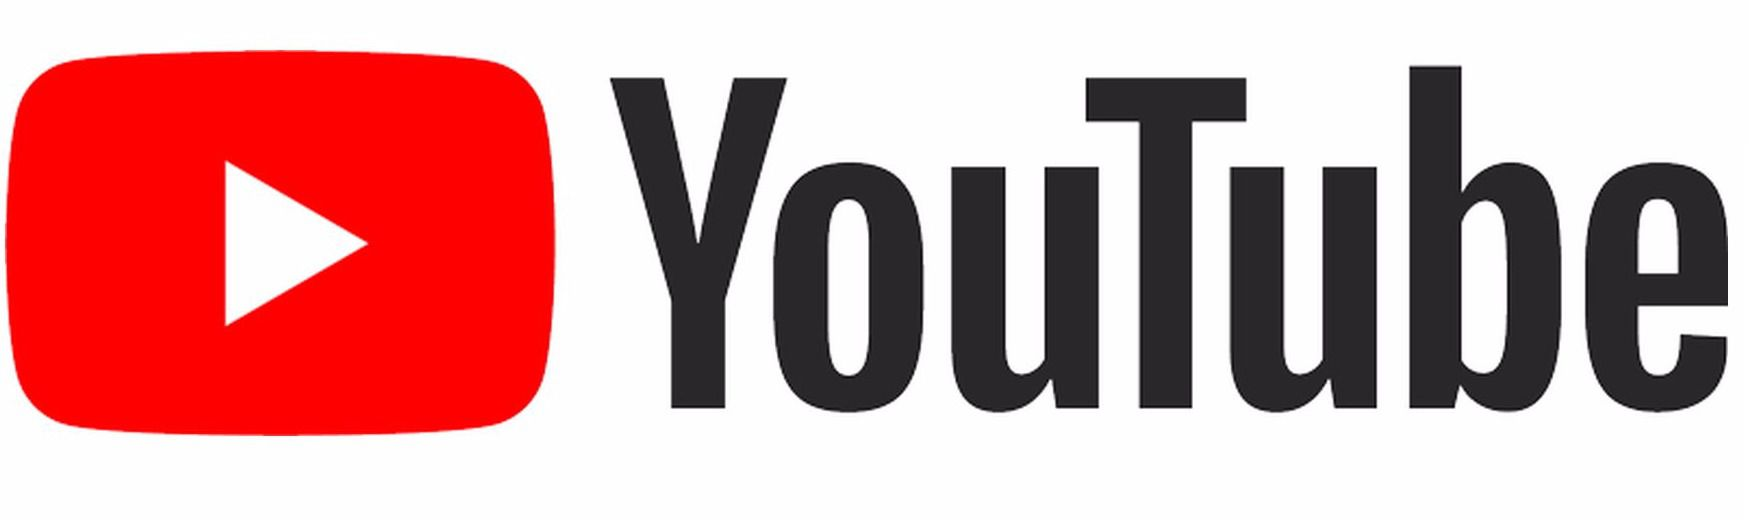 YouTube logo 2017